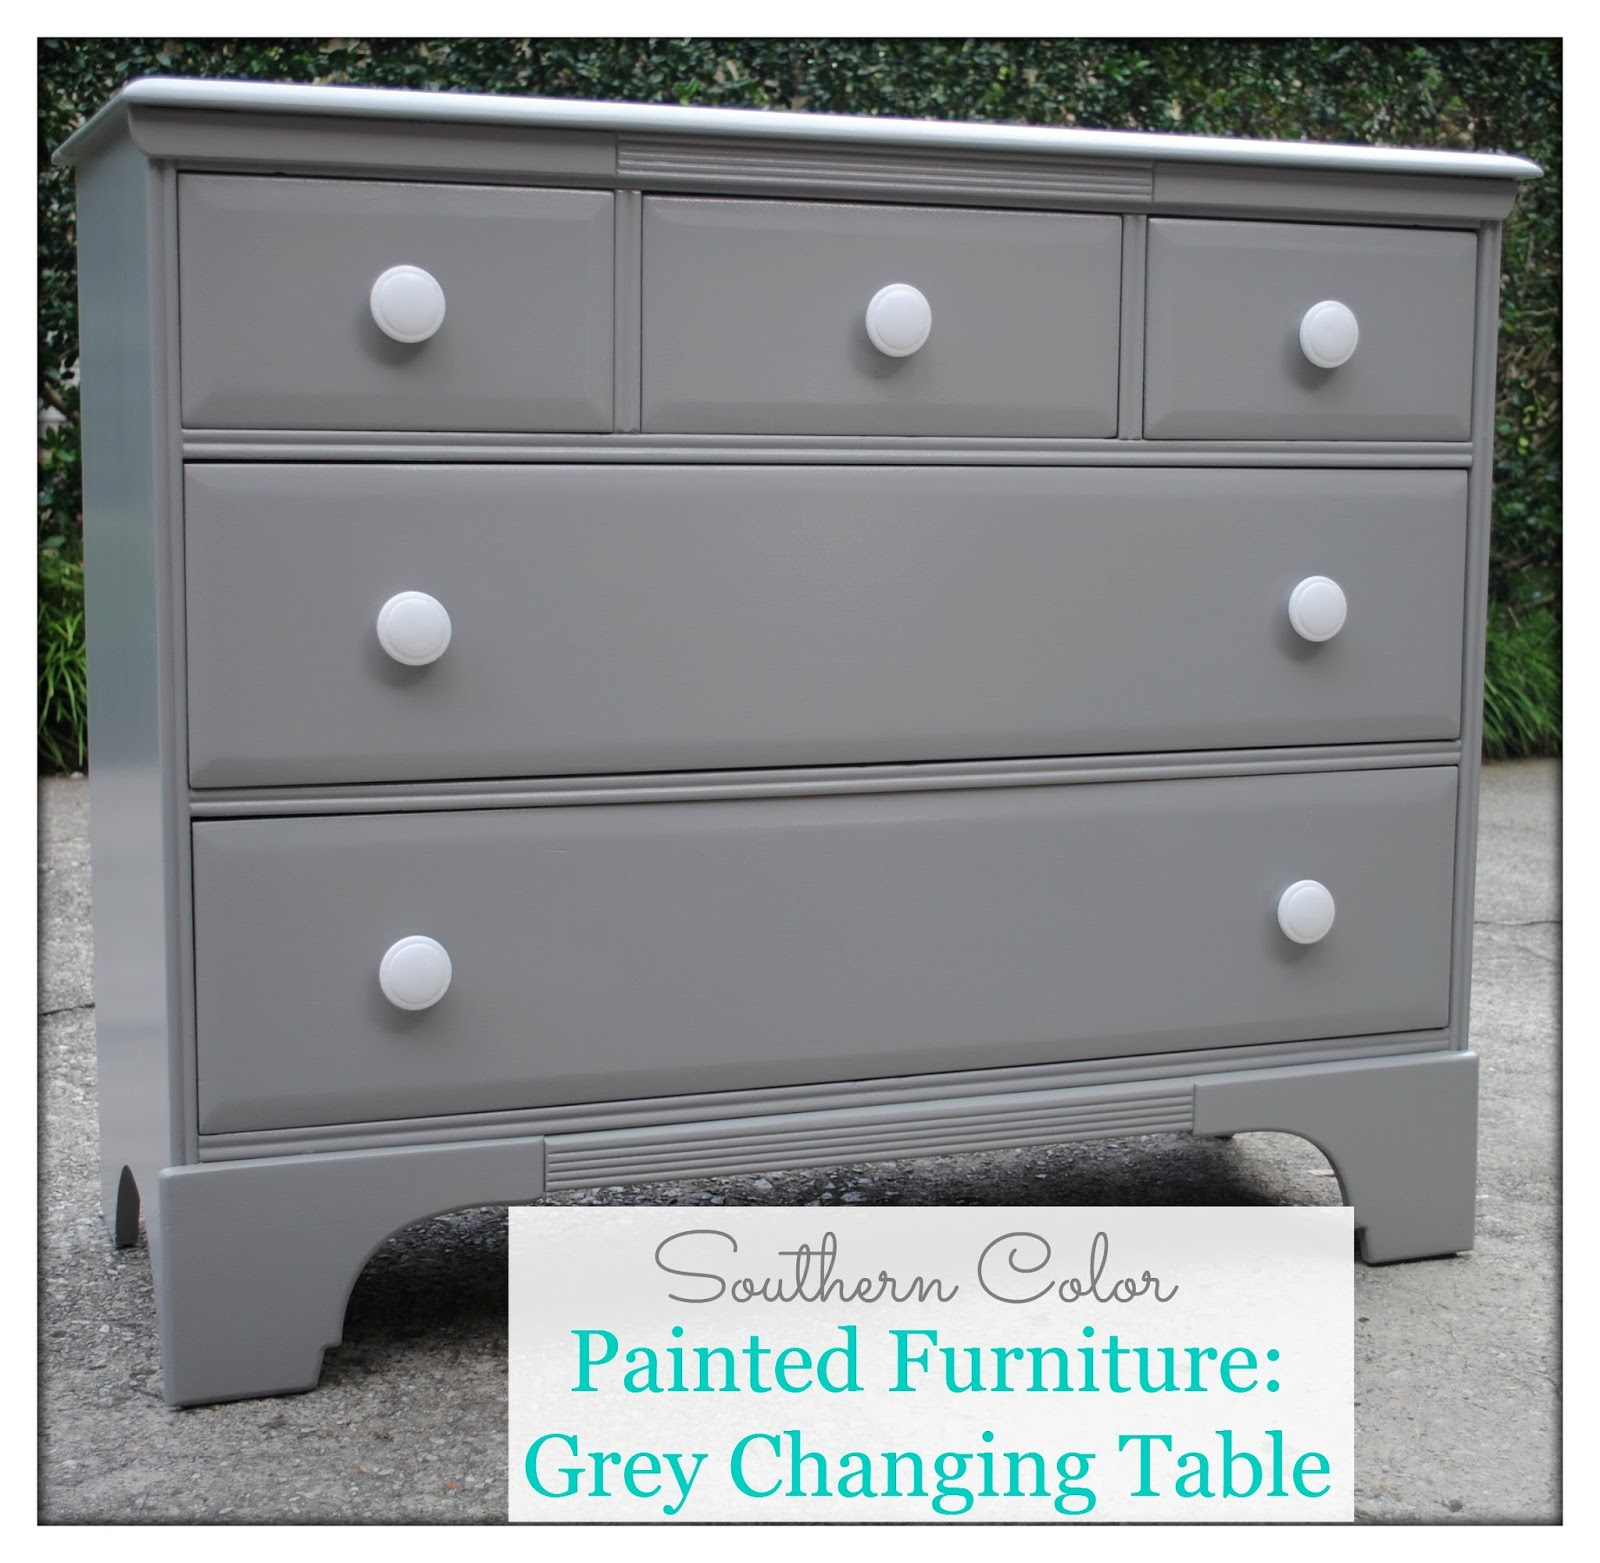 grey painted chairs hanging chair riyadh southern color furniture changing table